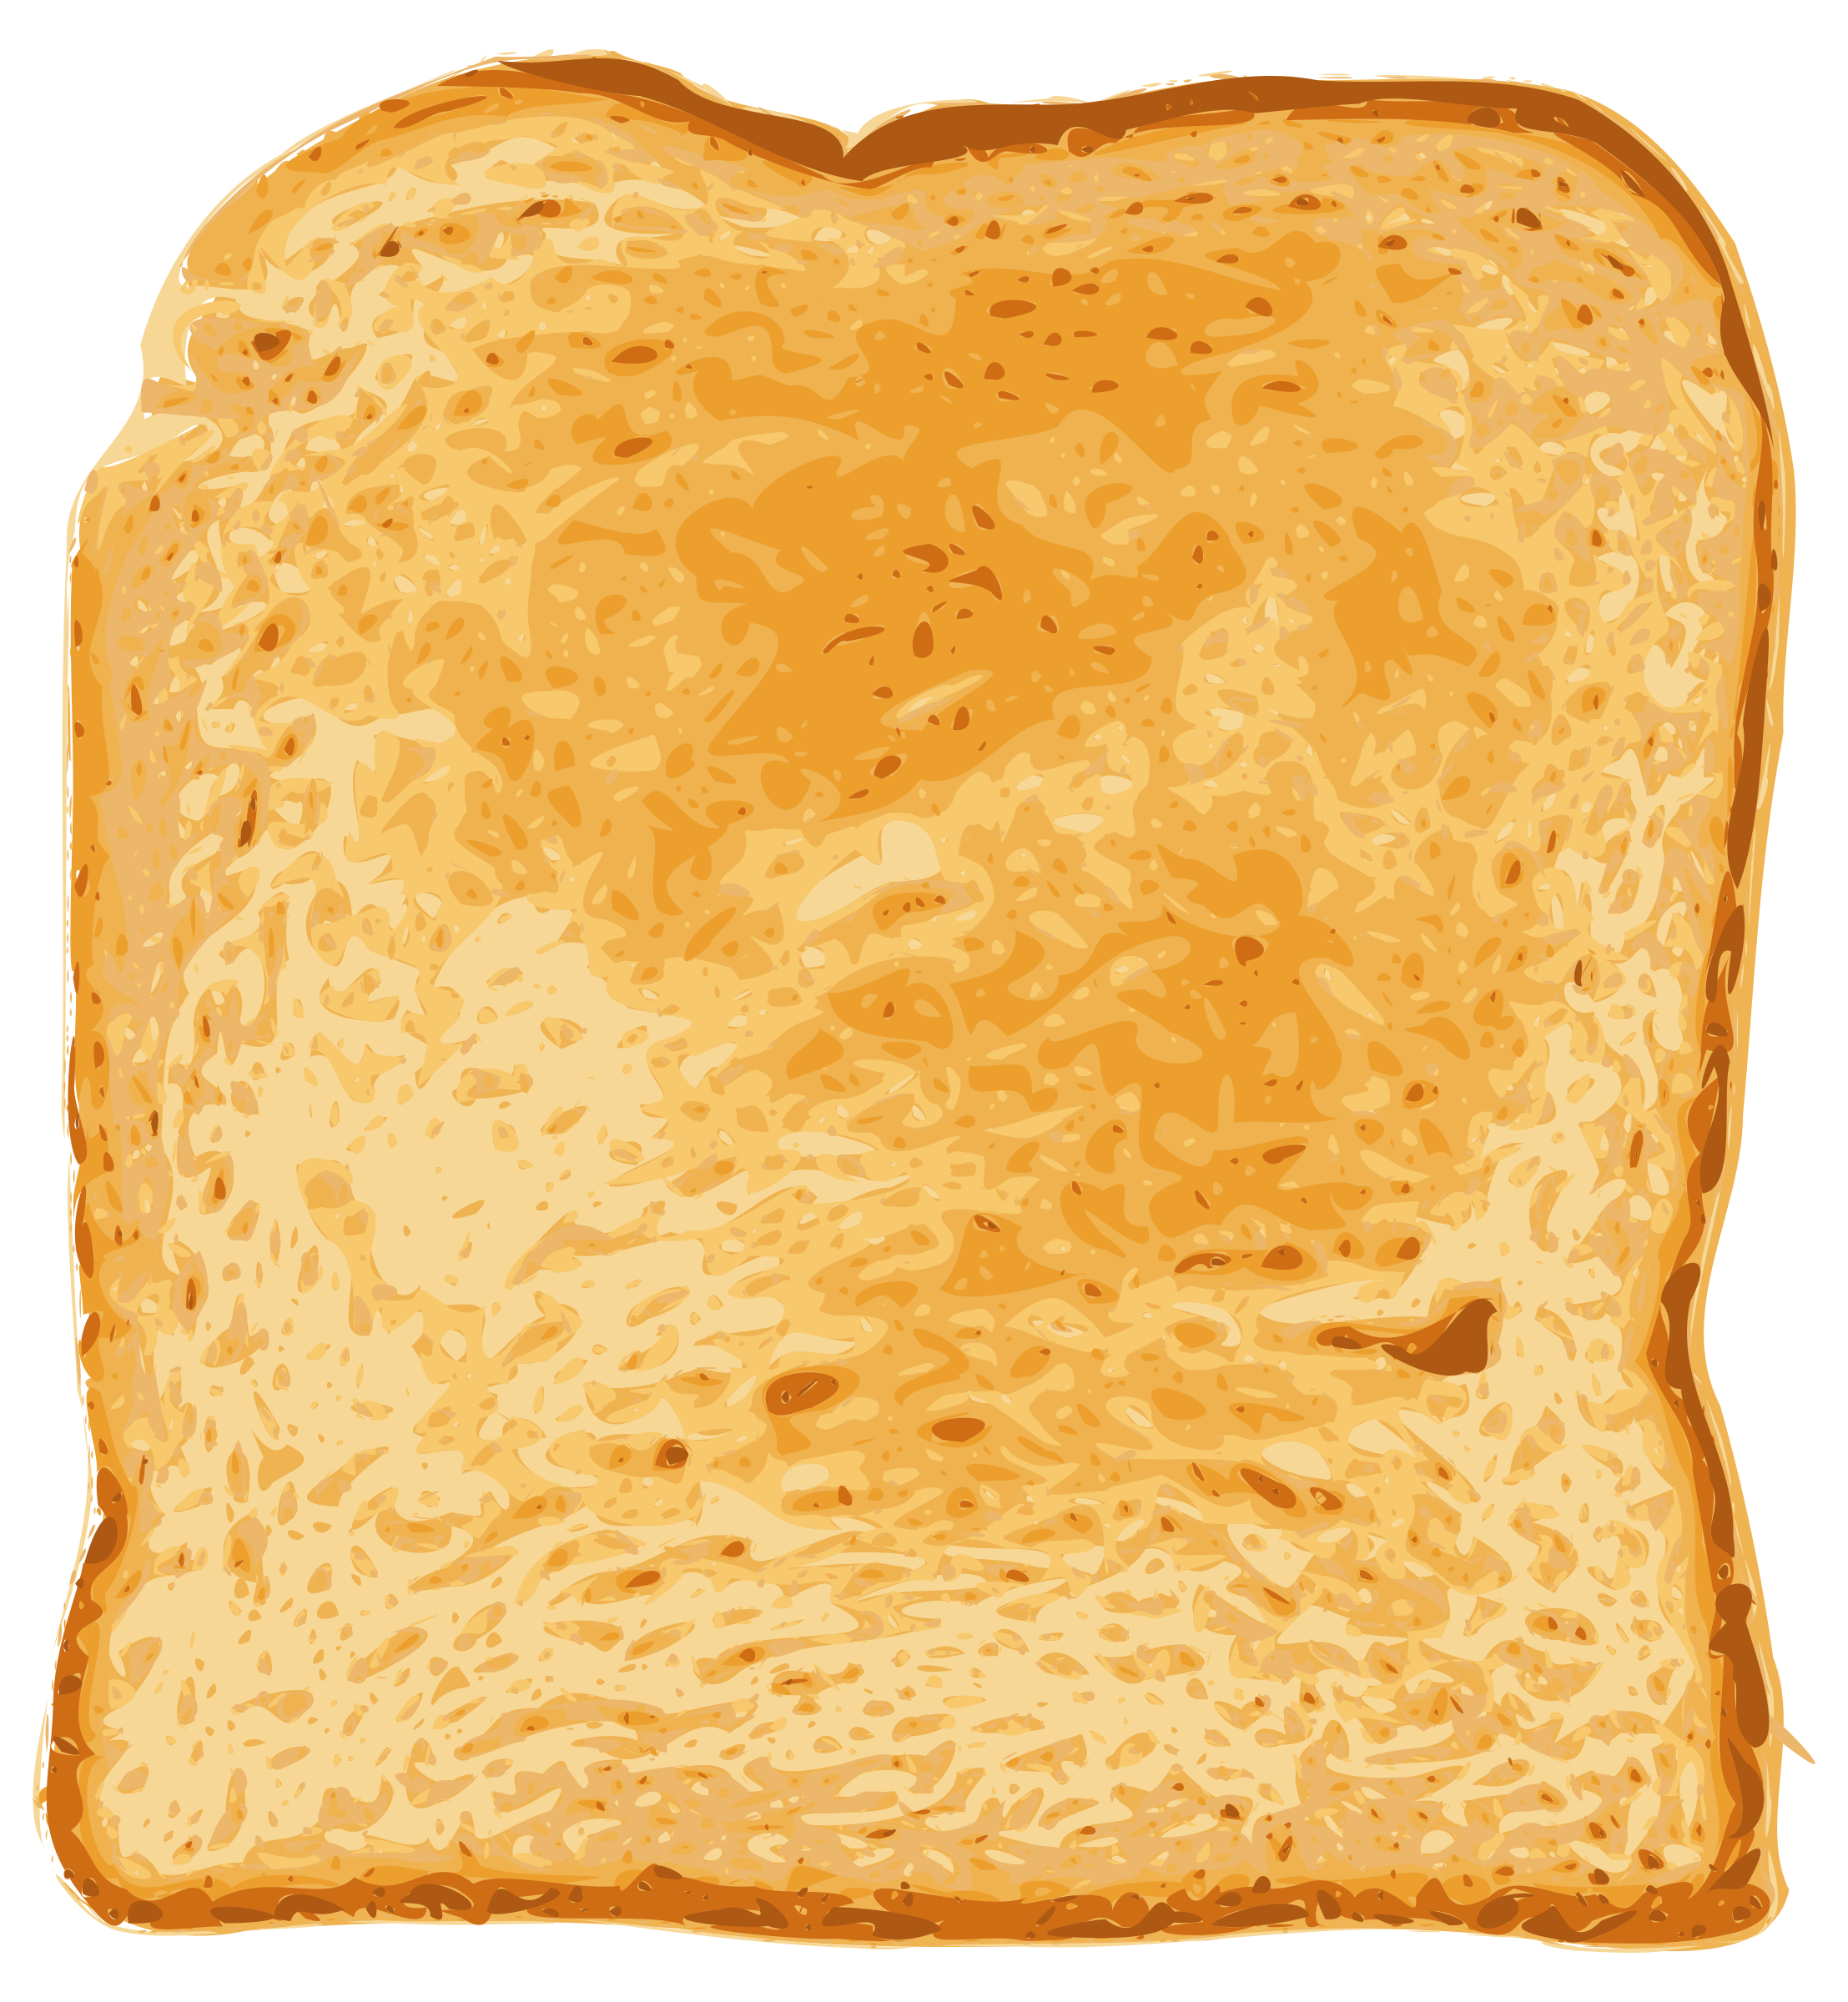 png library library Toast icons png free. Toaster clipart eye.